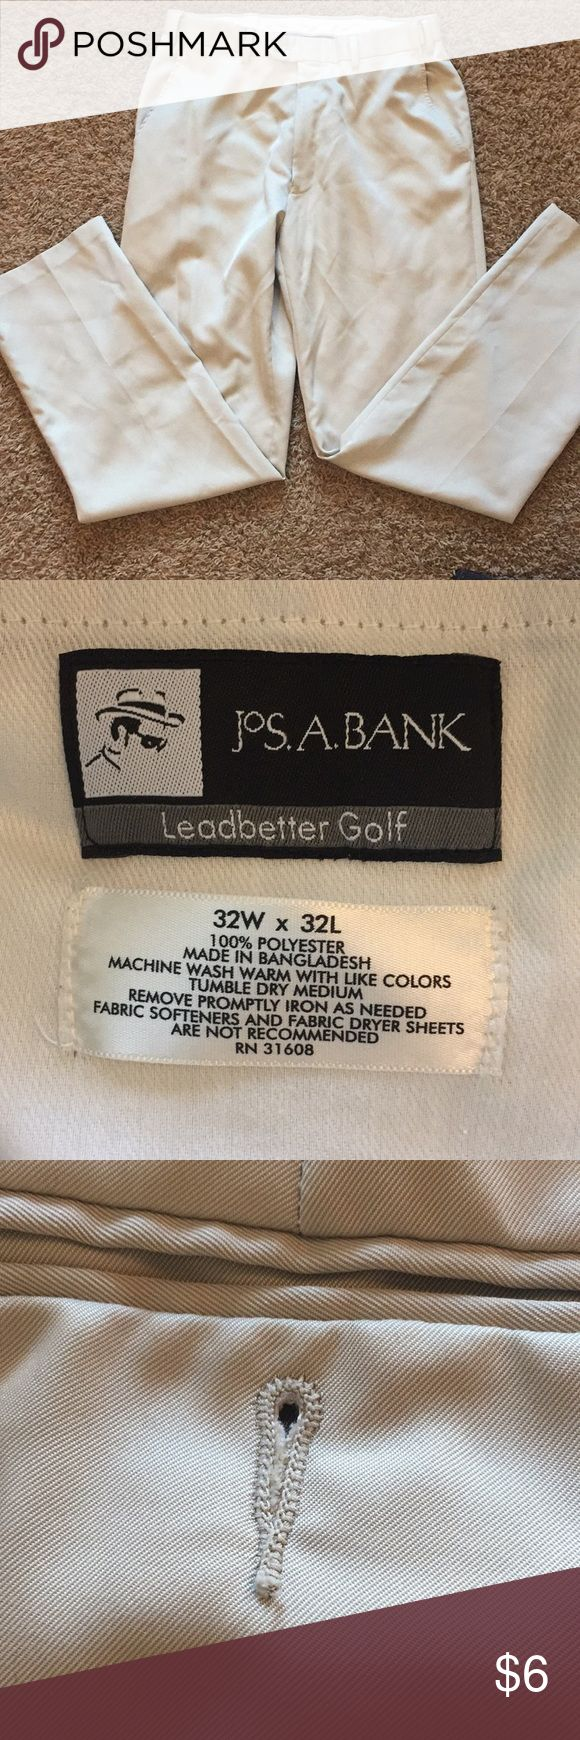 Men's 32Wx32L pants Light tan colored Jos. A. Bank Leadbetter Golf pants. In great shape except missing one back pocket button (see pics). Smoke- and pet-free home. 32W x 32L. Jos. A. Bank Pants Chinos & Khakis